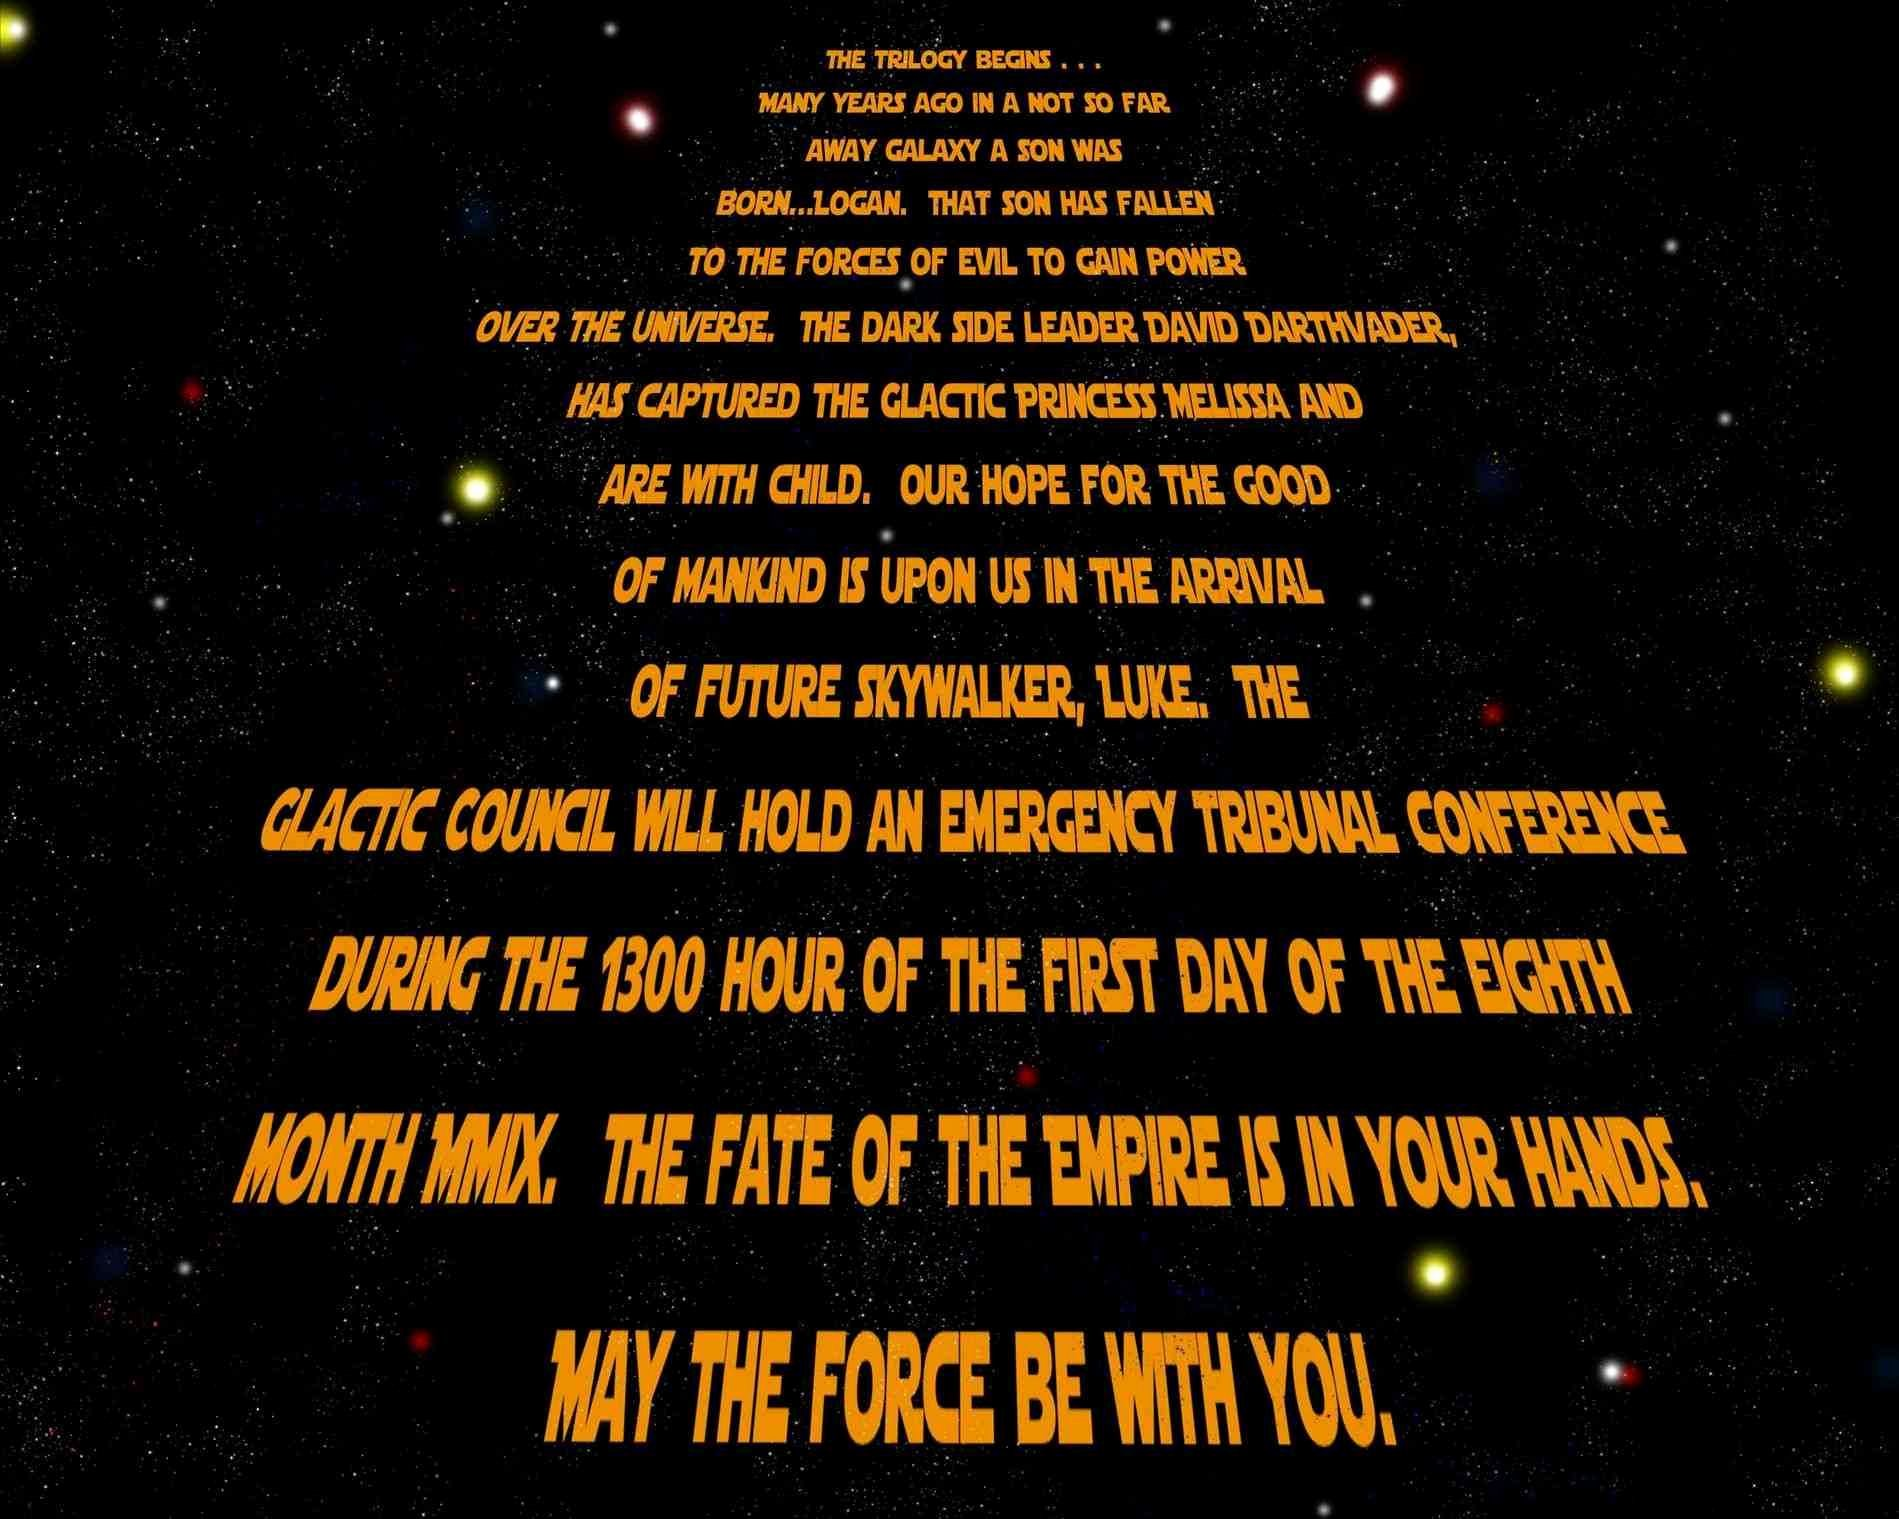 Star Wars Birthday Invitation Wording Fresh Wedding Invitation Wording In Spanish which Can Be Used to